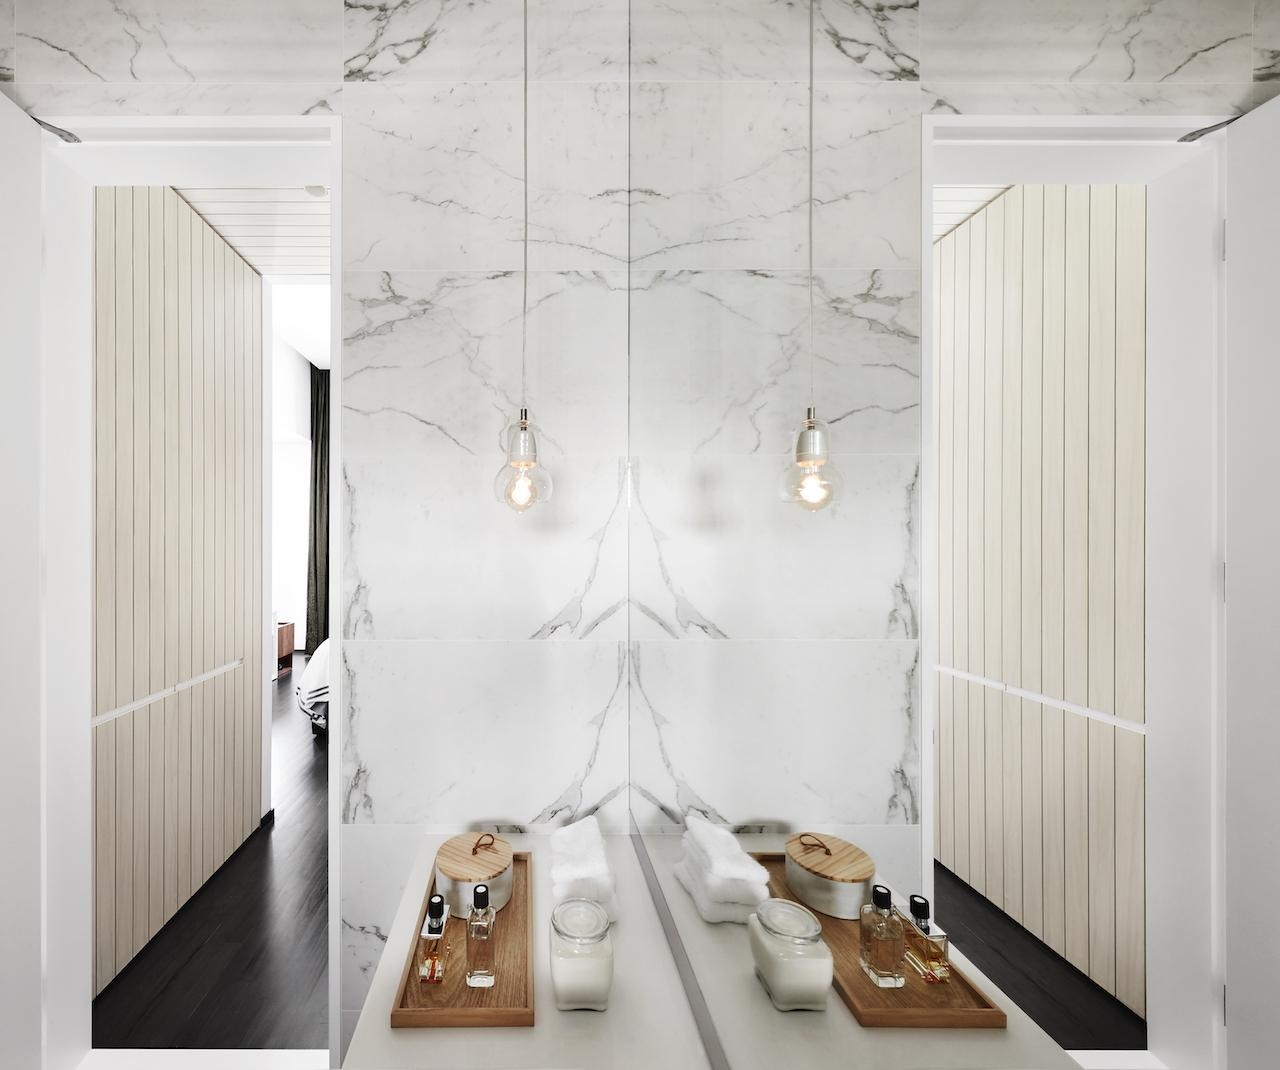 In the master bathroom, a pendant lamp from &Tradition complements white marble walls and floors